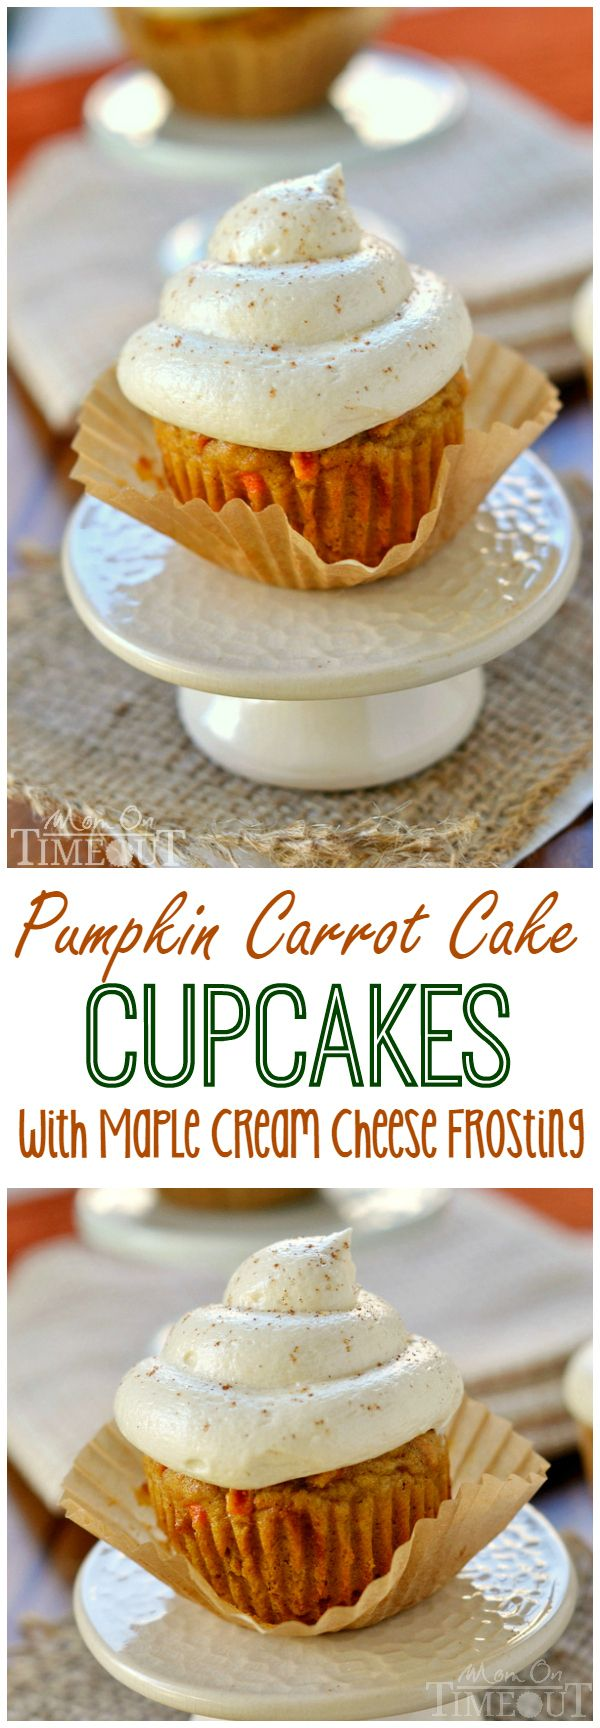 Pumpkin Carrot Cake Cupcakes with Maple Cream Cheese Frosting - Mom On Timeout